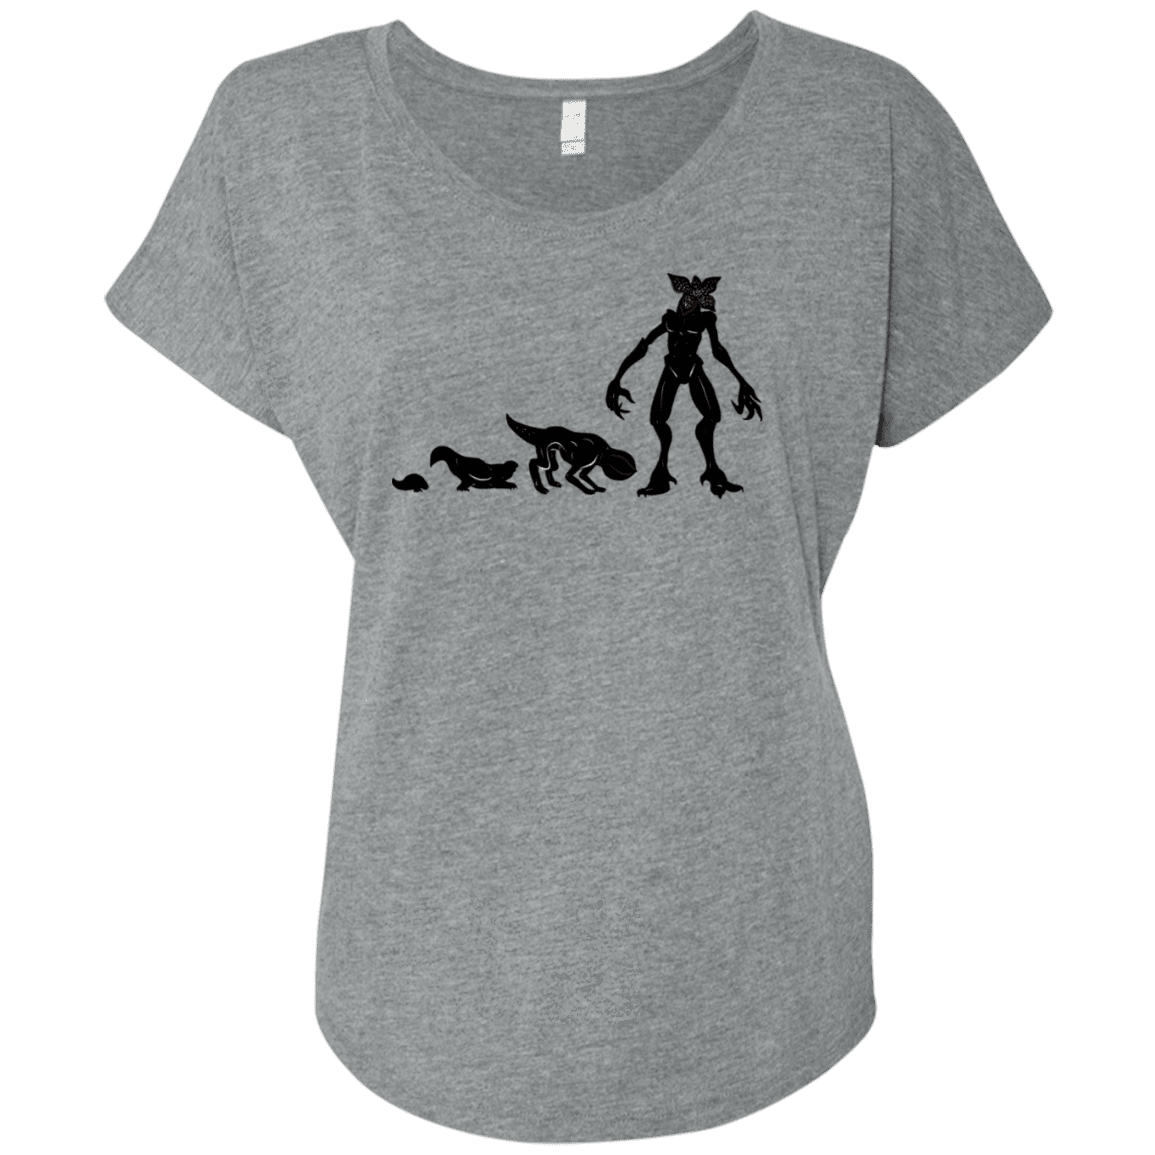 T-Shirts Premium Heather / X-Small Demogorgon Evolution Triblend Dolman Sleeve